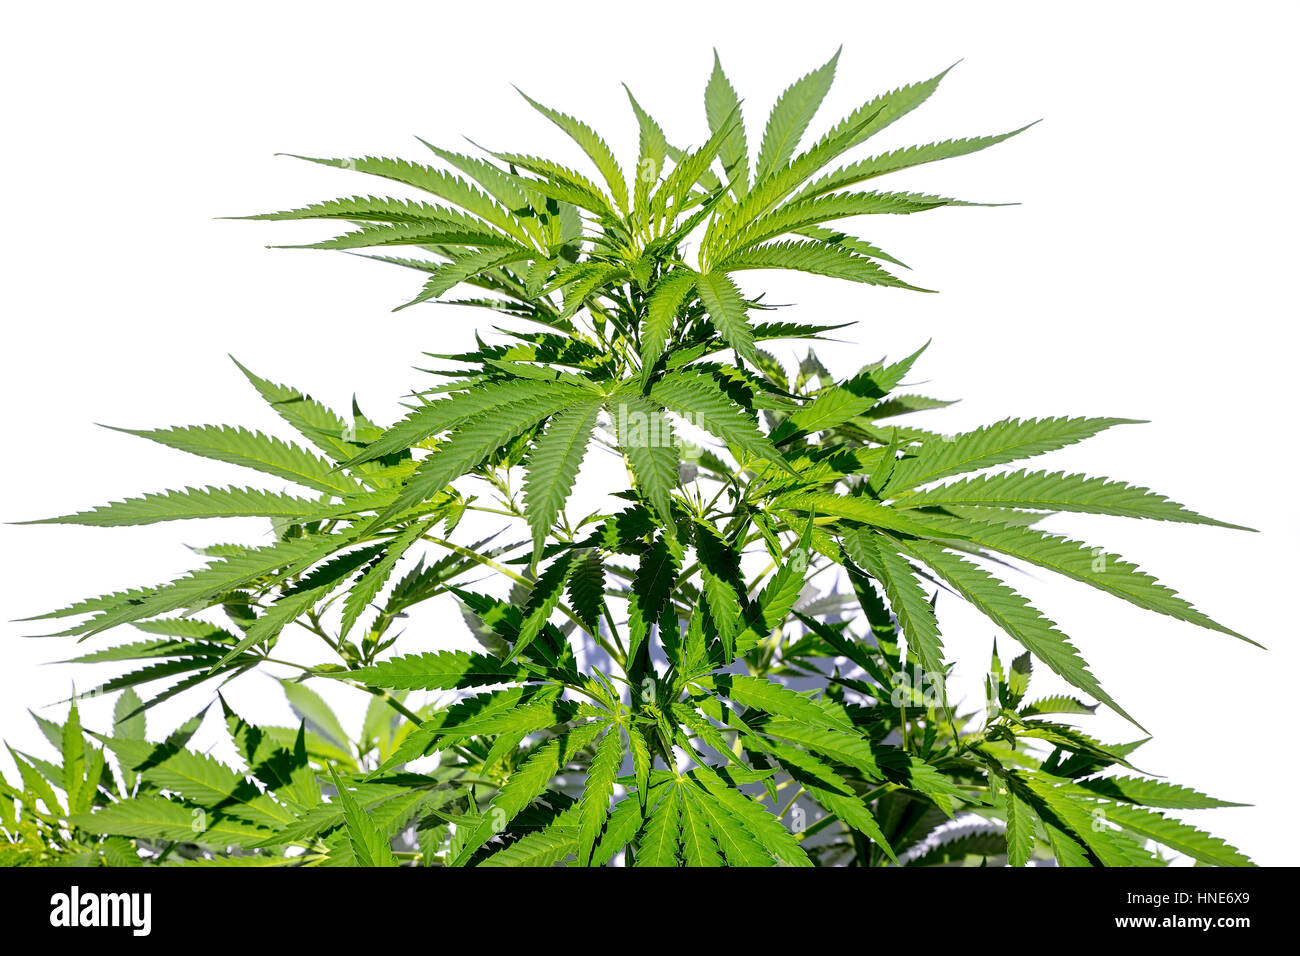 Cannabis or weed plant isolated on white background - Stock Image